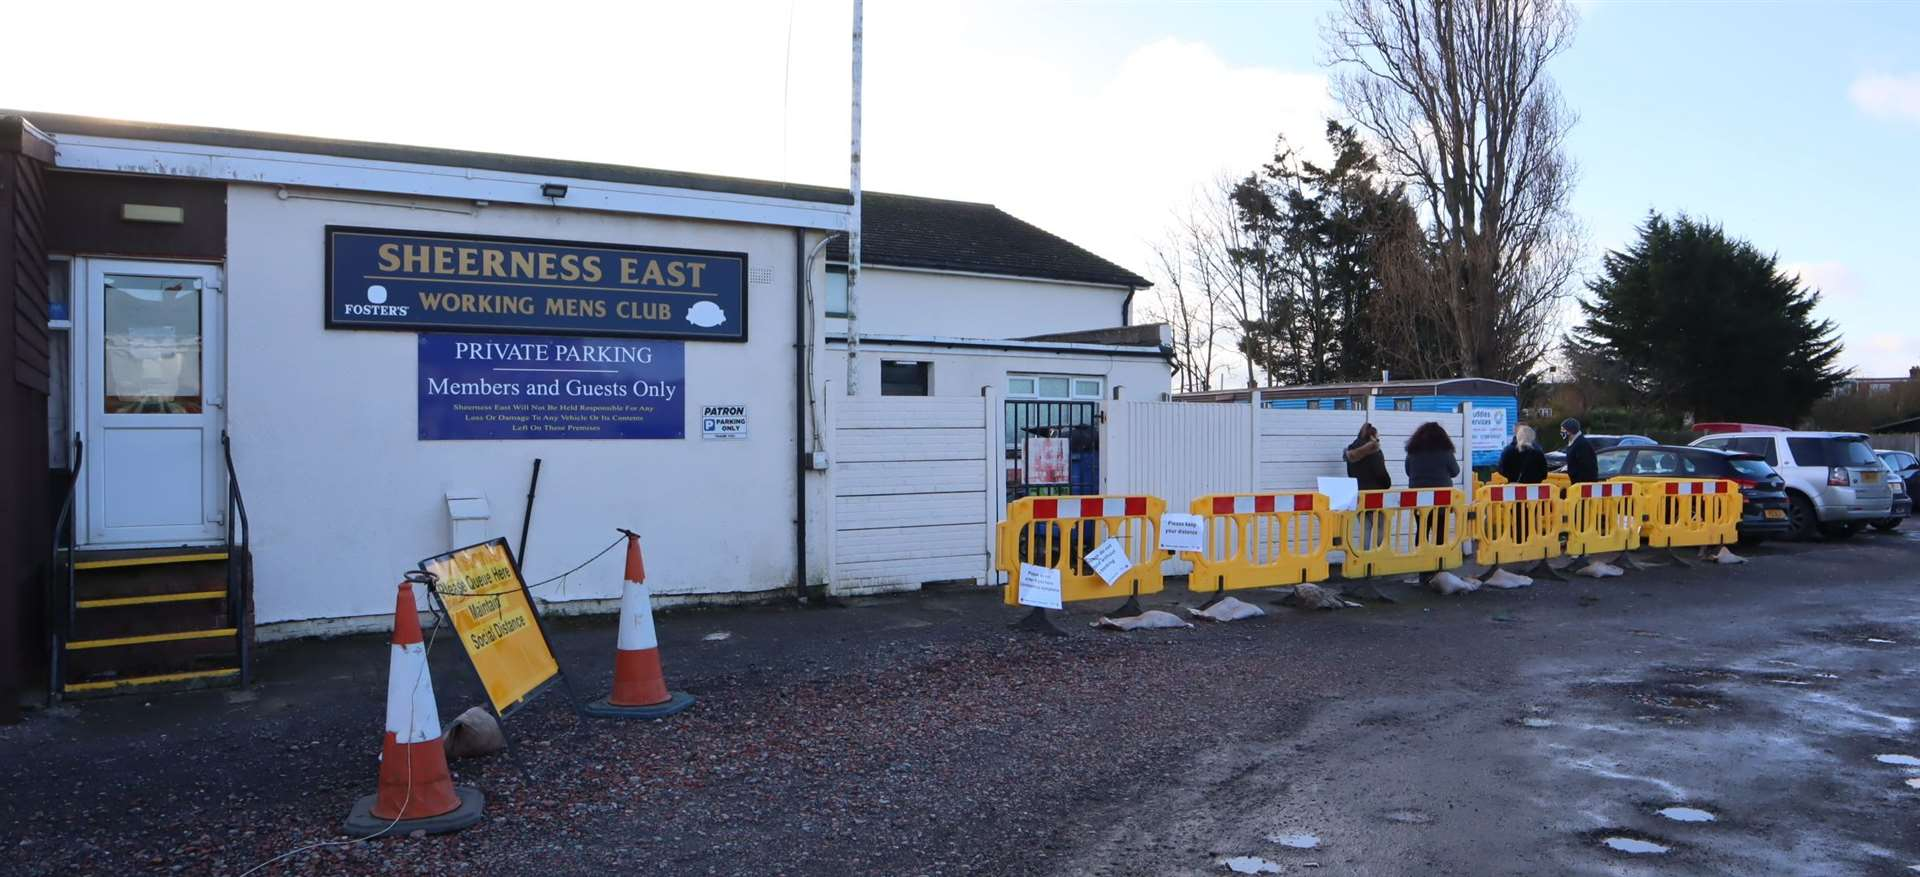 A testing site is open at Sheerness East Working Men's Club on Sheppey